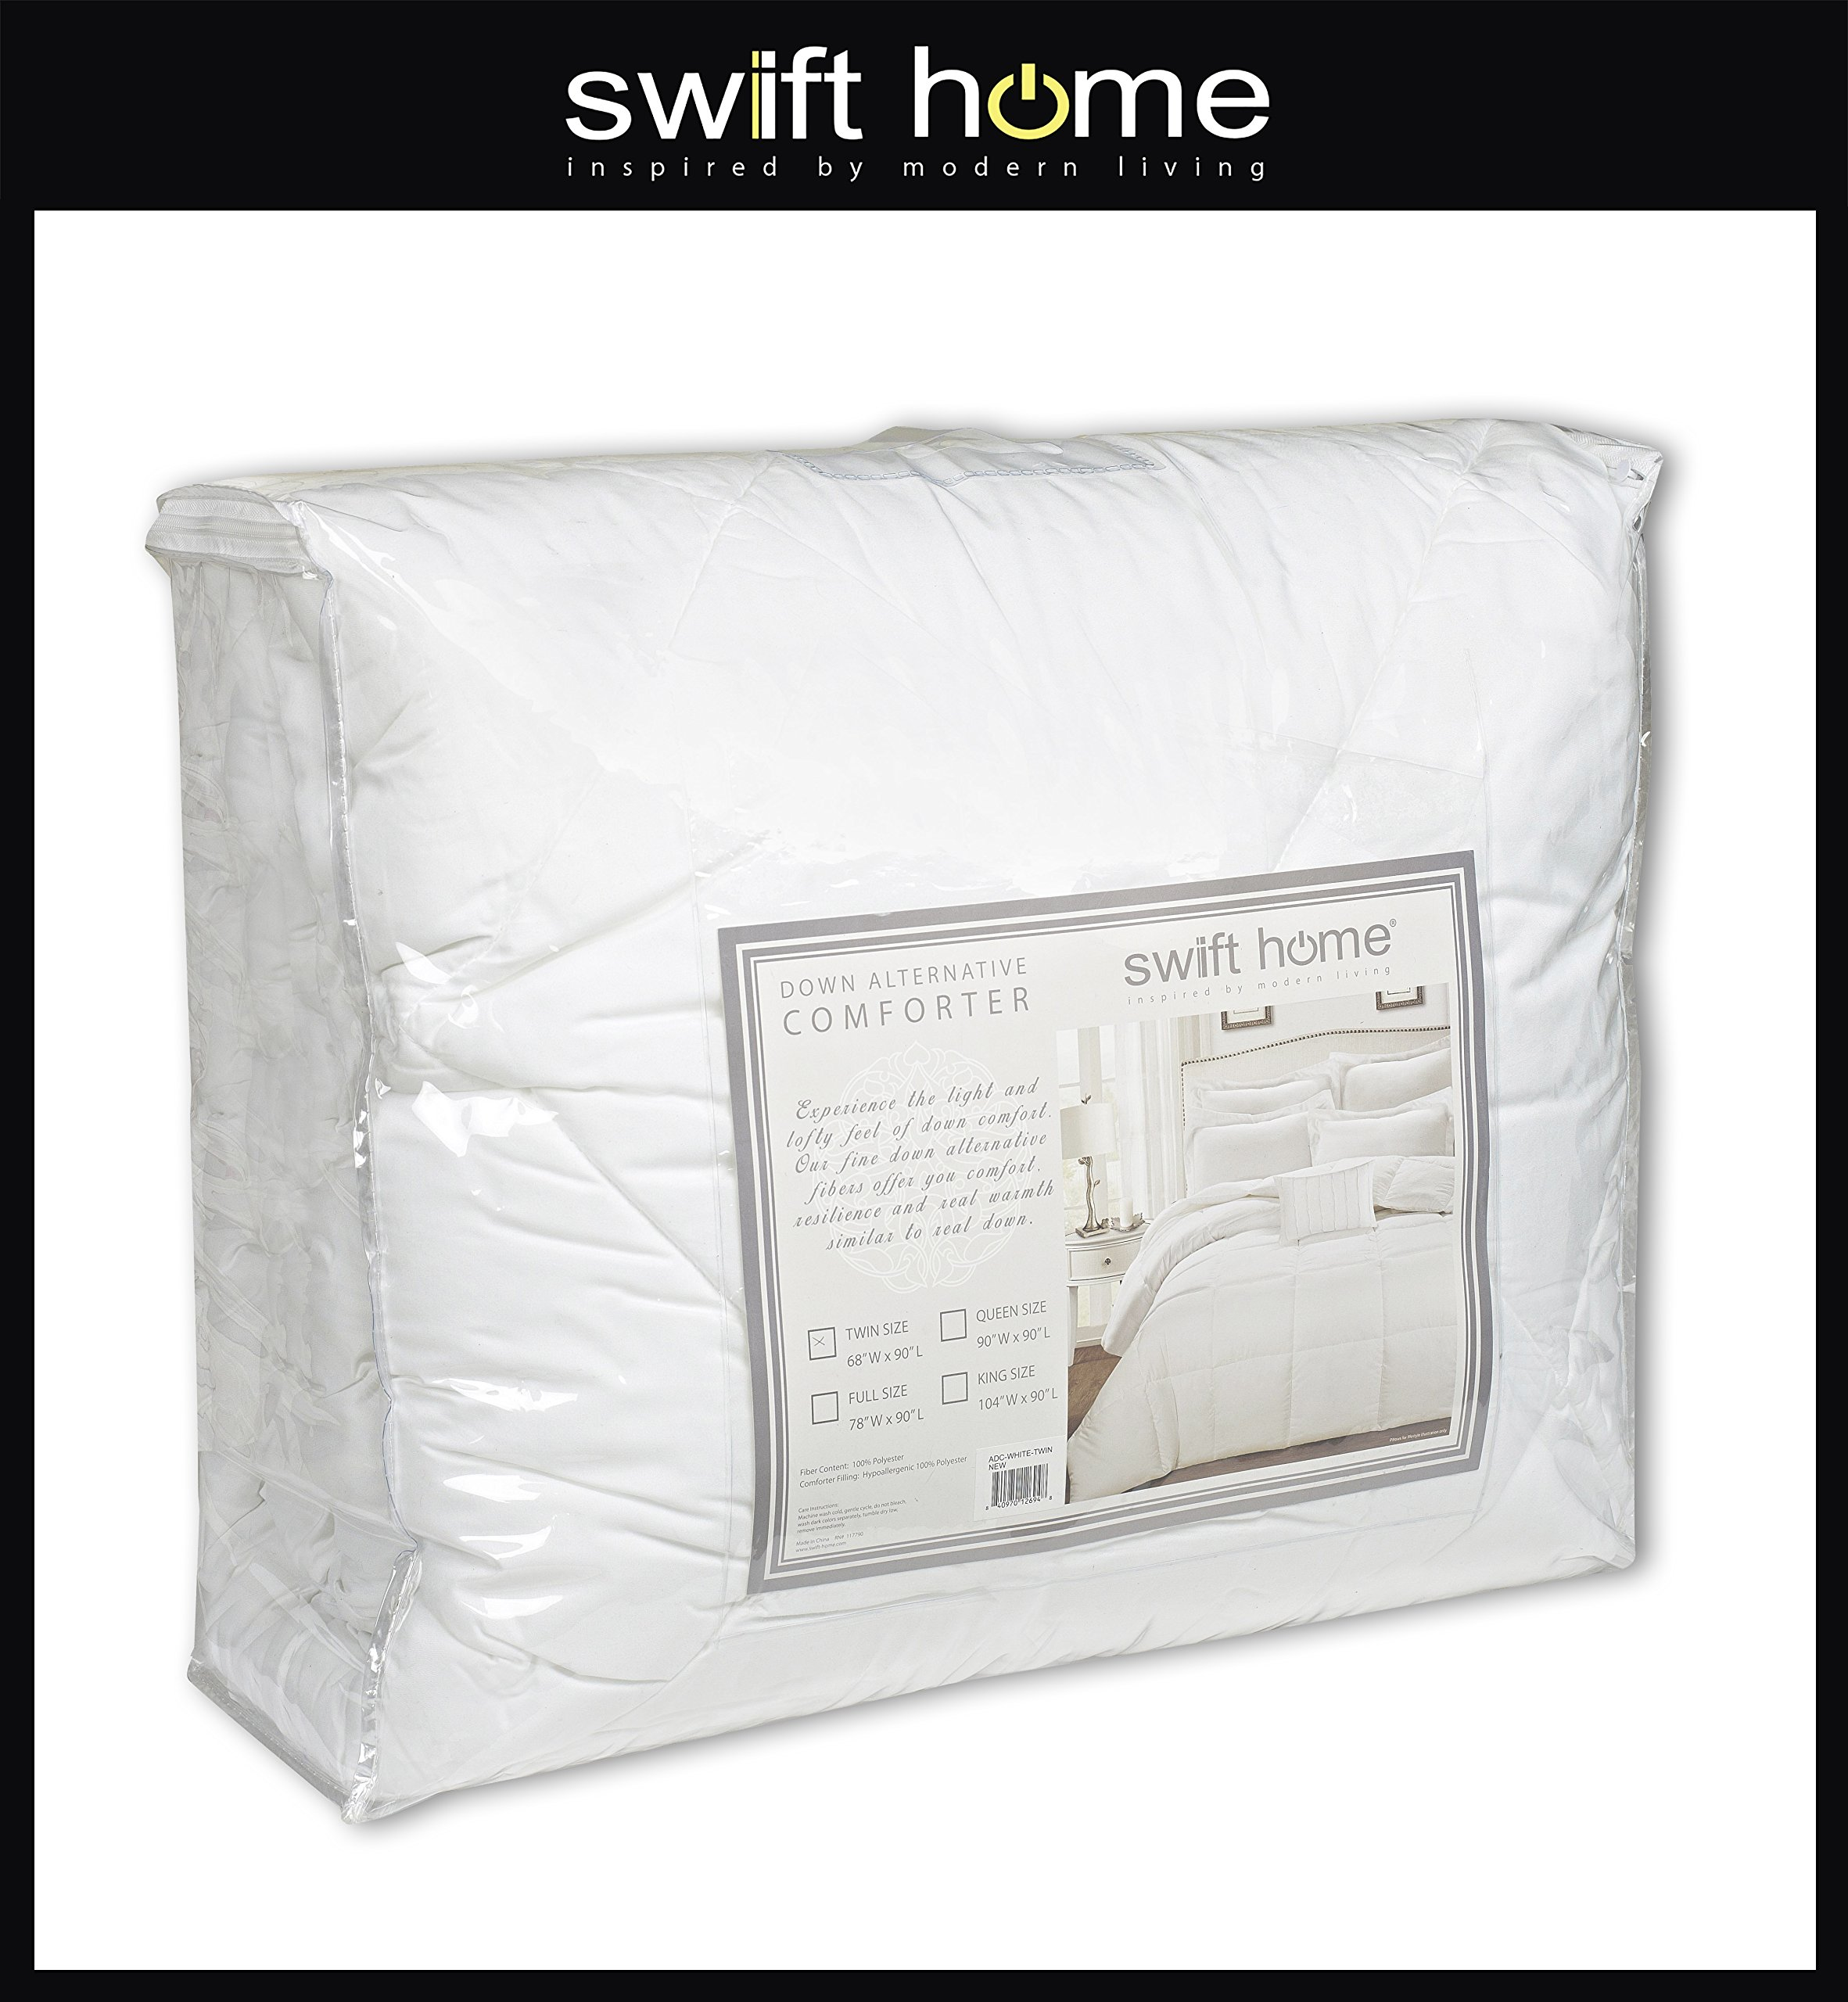 Swift Home All-Season Extra Soft Luxurious Classic Light-Warmth Goose Down-Alternative Comforter, Queen 90'' x 90'', Navy by Swift Home (Image #4)